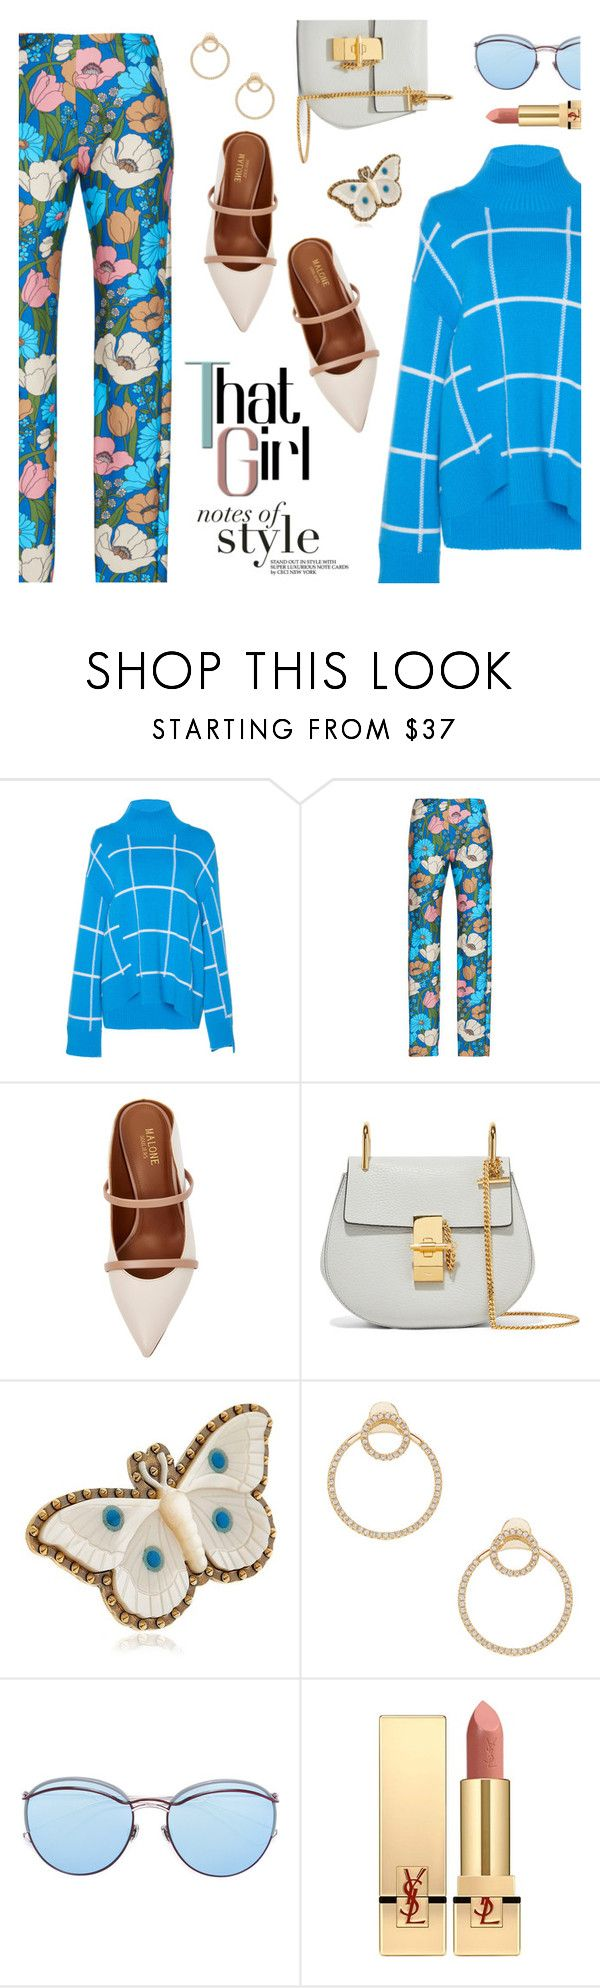 """""""Outfit of the Day"""" by dressedbyrose on Polyvore featuring Malone Souliers, Chloé, Gucci, Joolz by Martha Calvo, Christian Dior, Yves Saint Laurent, ootd and polyvoreeditorial"""